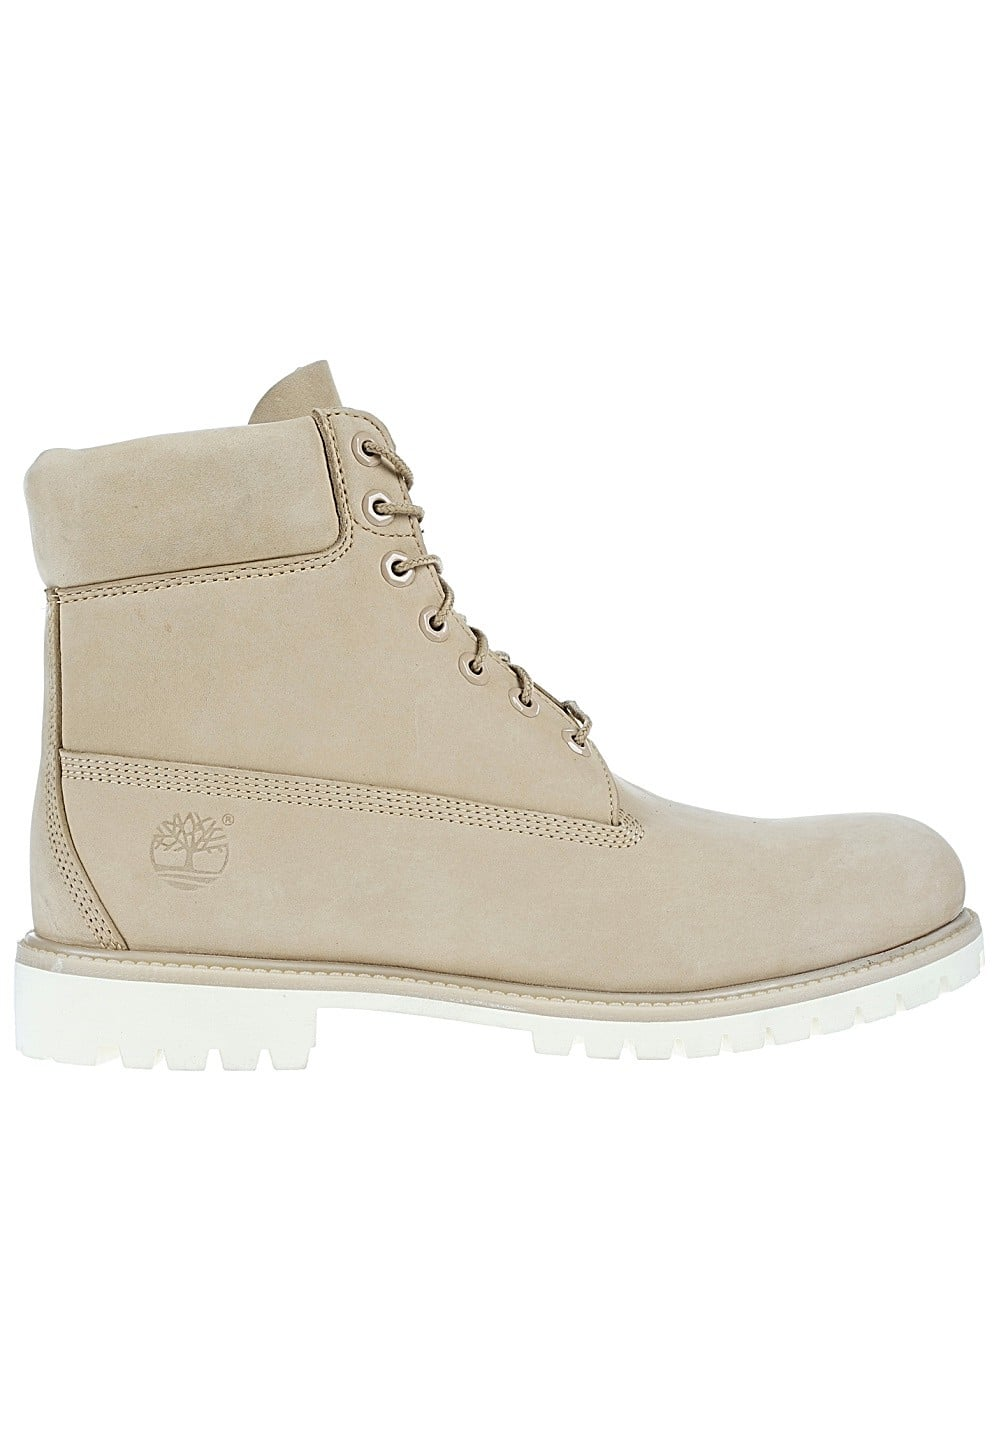 chaussure timberland hommes 2018